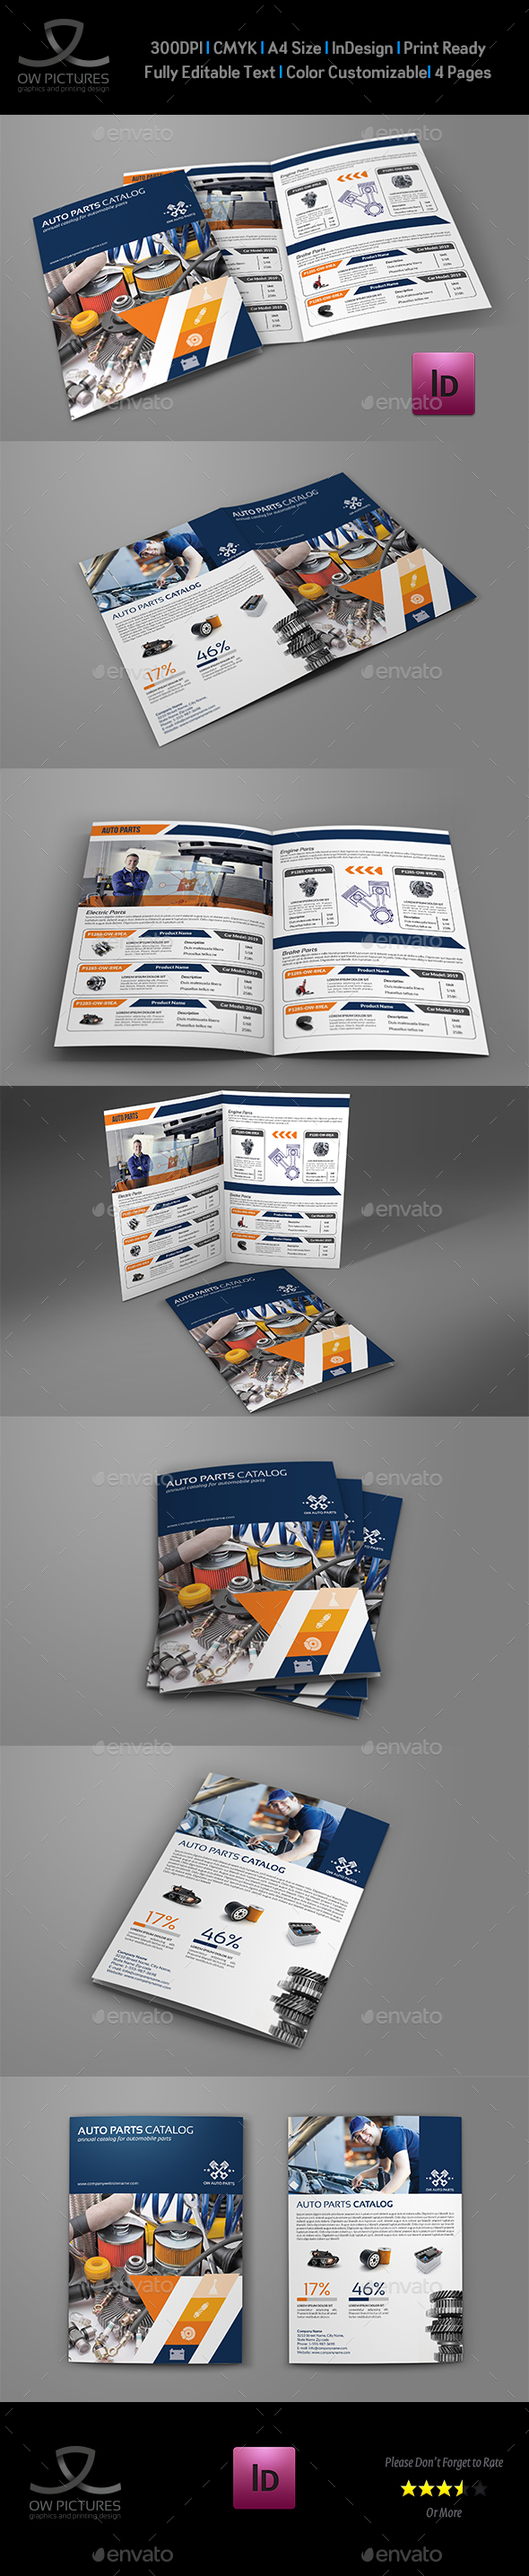 Auto Parts Catalog BiFold Brochure Template Vol Brochure - Bi fold brochure template indesign